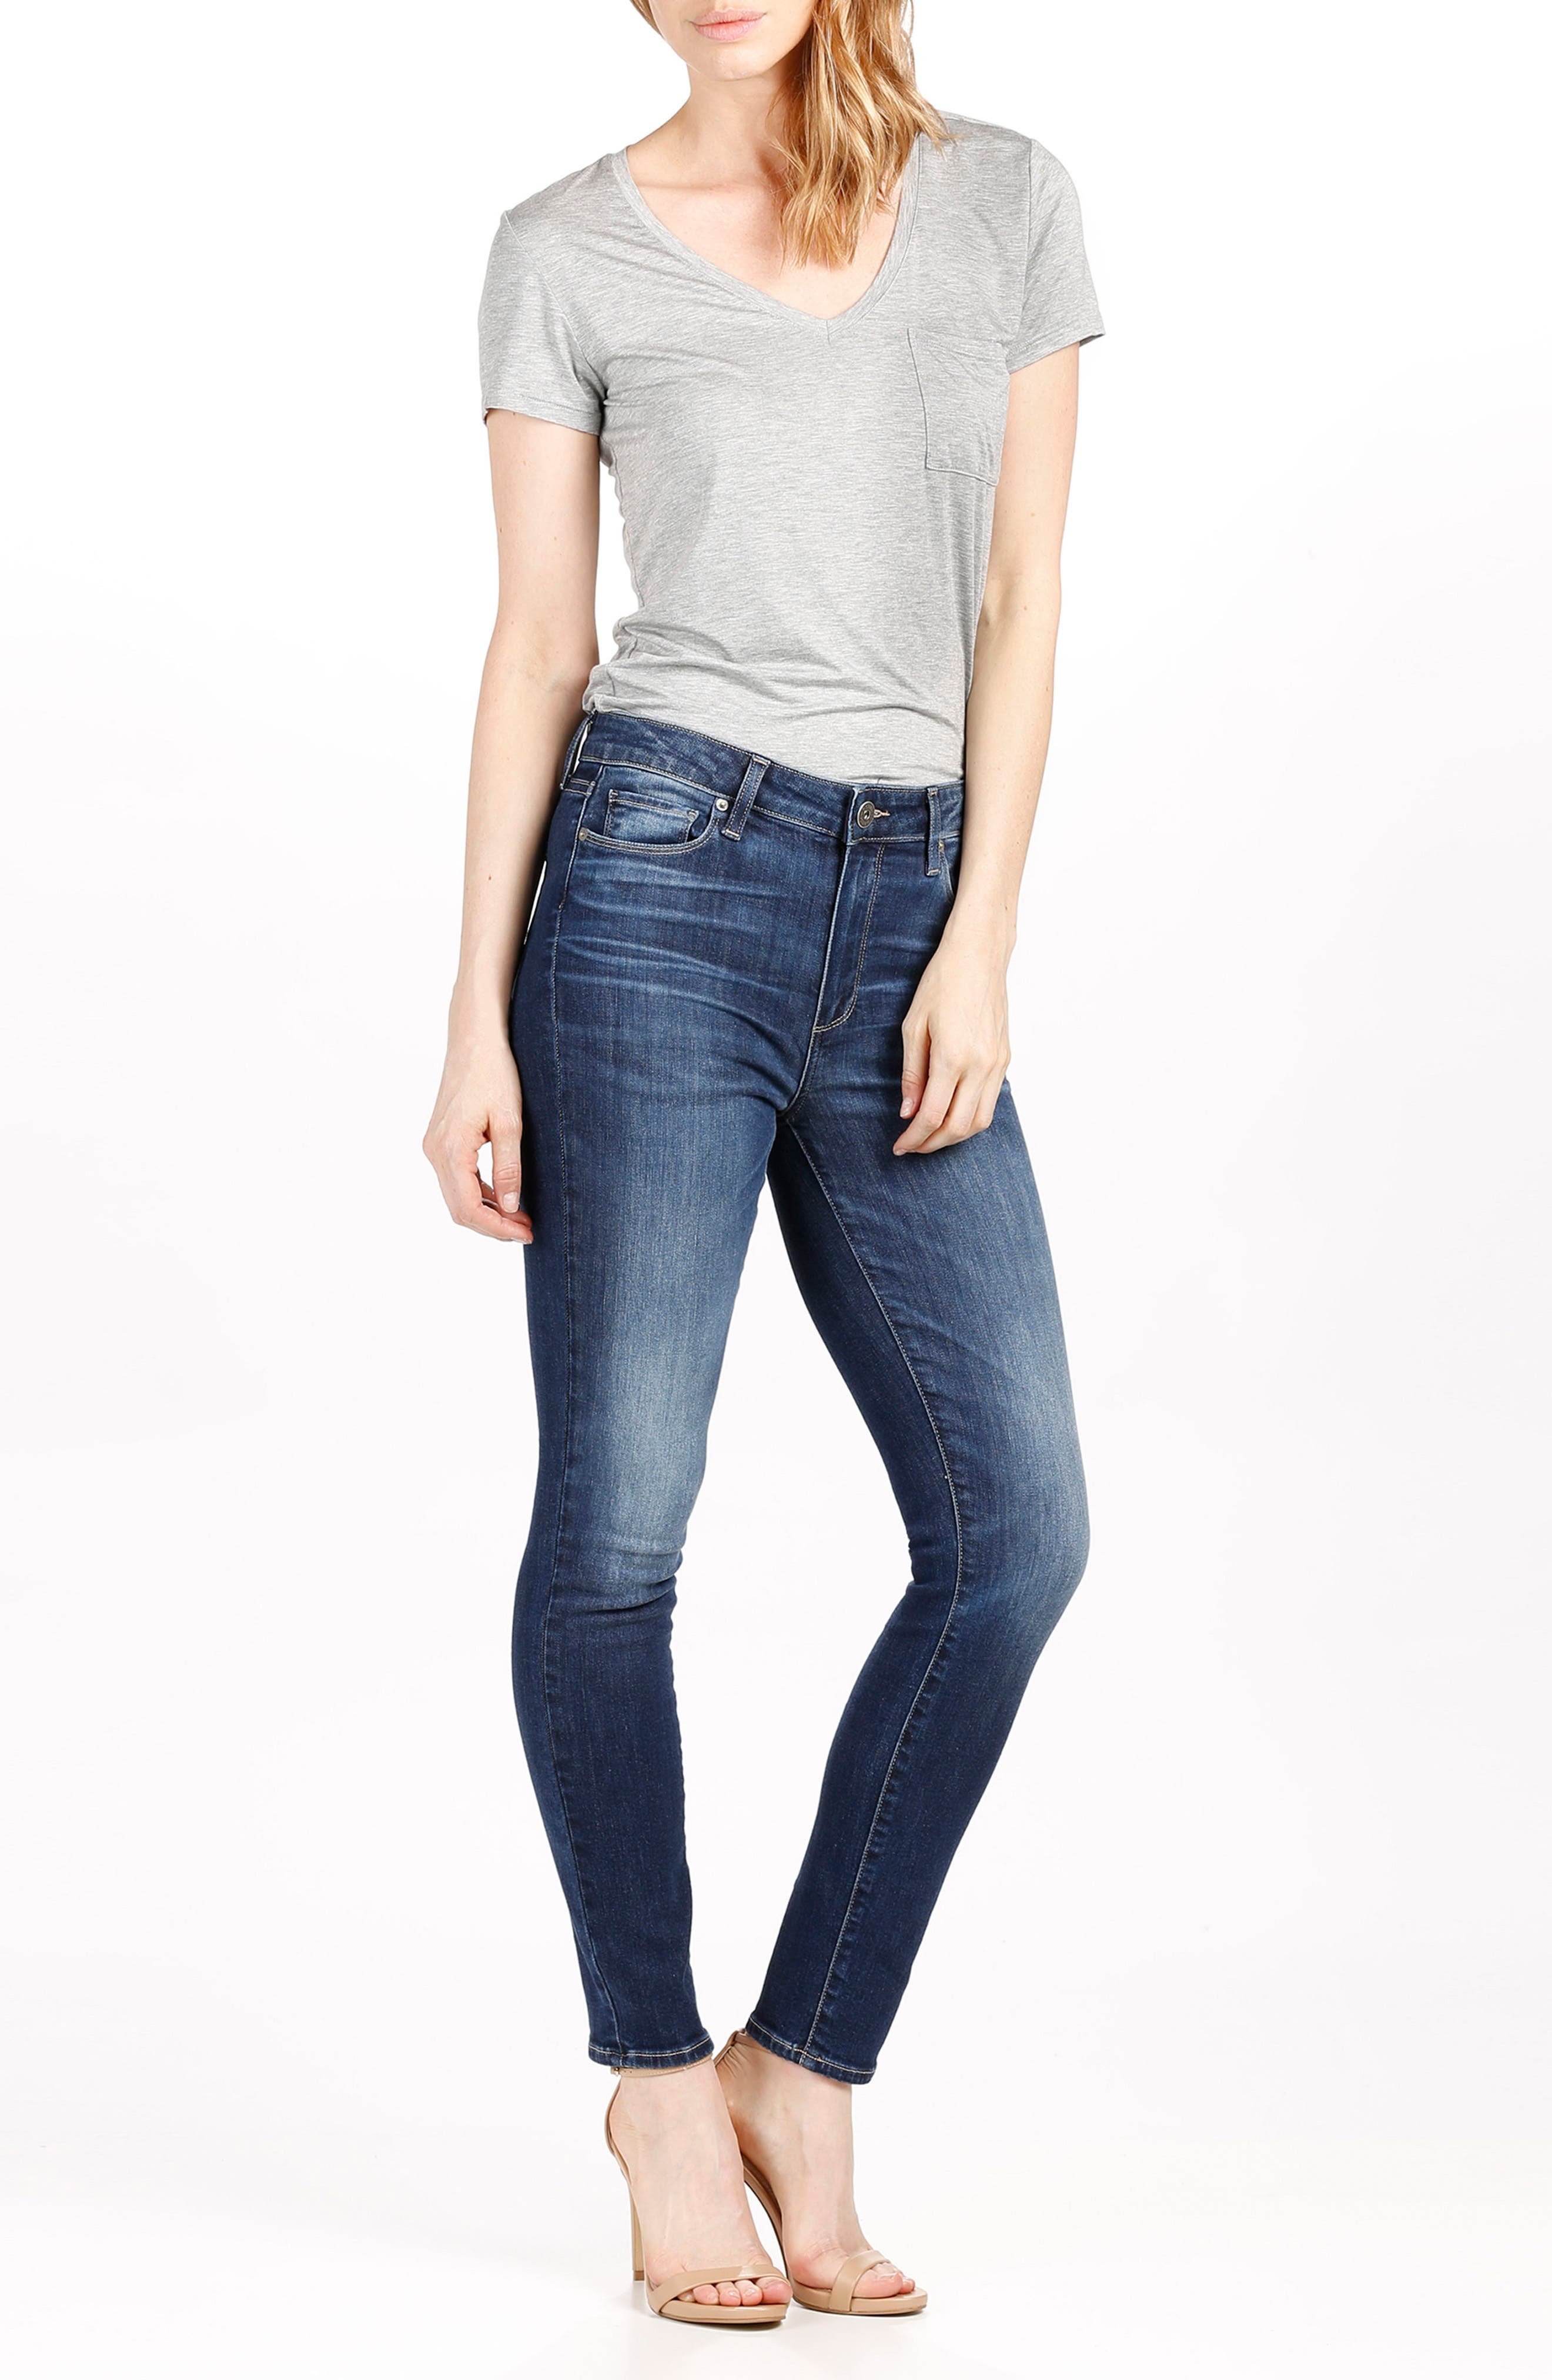 Hoxton High Waist Ankle Skinny Jeans,                             Alternate thumbnail 3, color,                             400